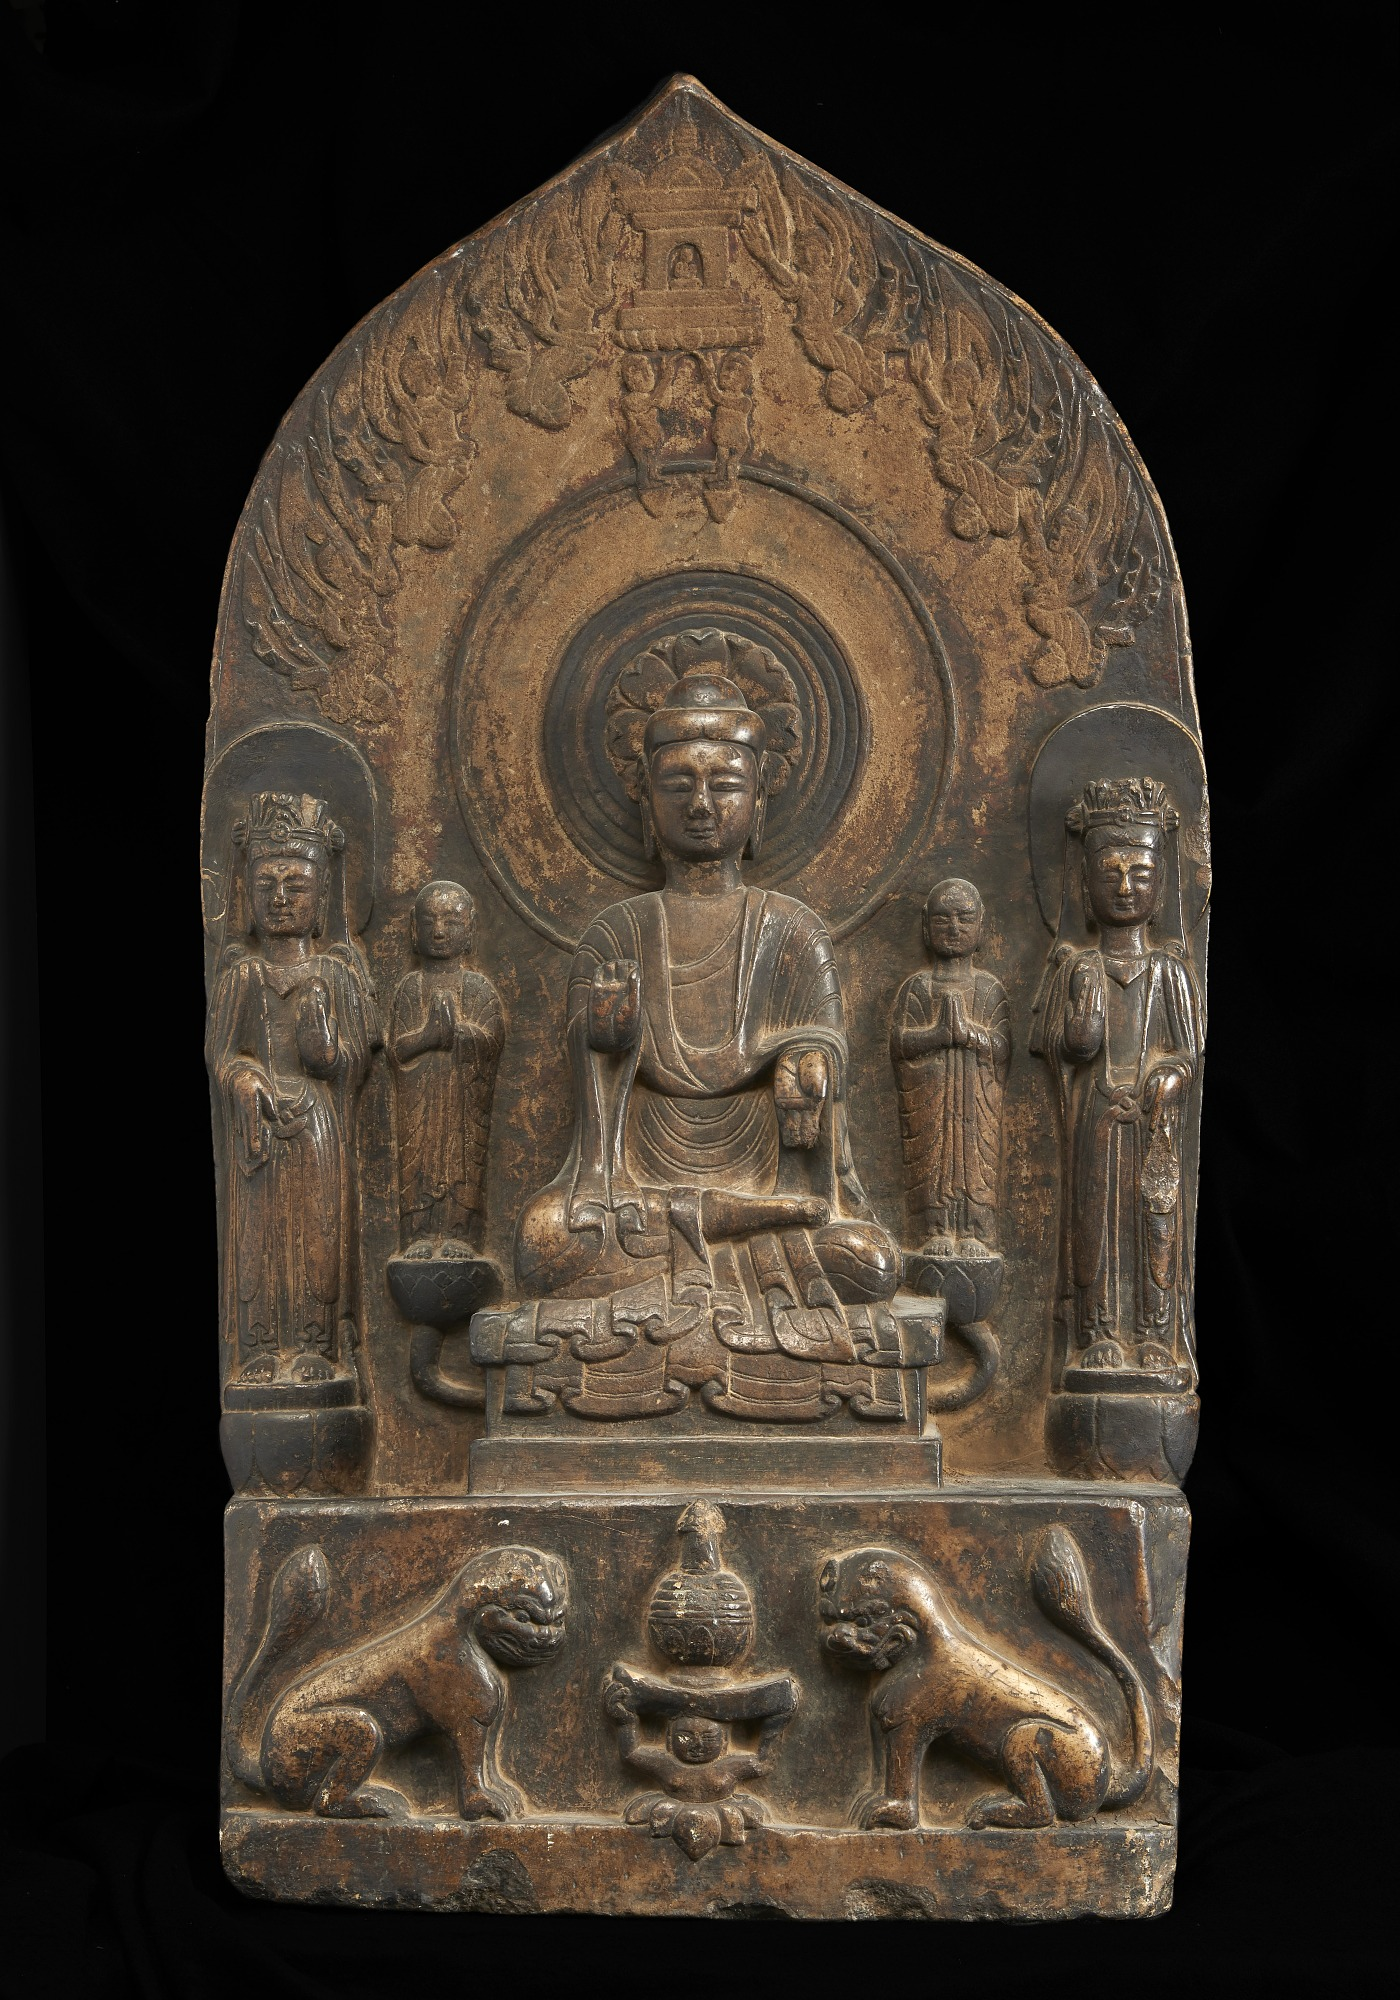 images for Buddhist tablet: seated central figure flankedd by monk and Bodhisattva on either hand; rectangular base, and figure of Buddha in sunken relief on reverse